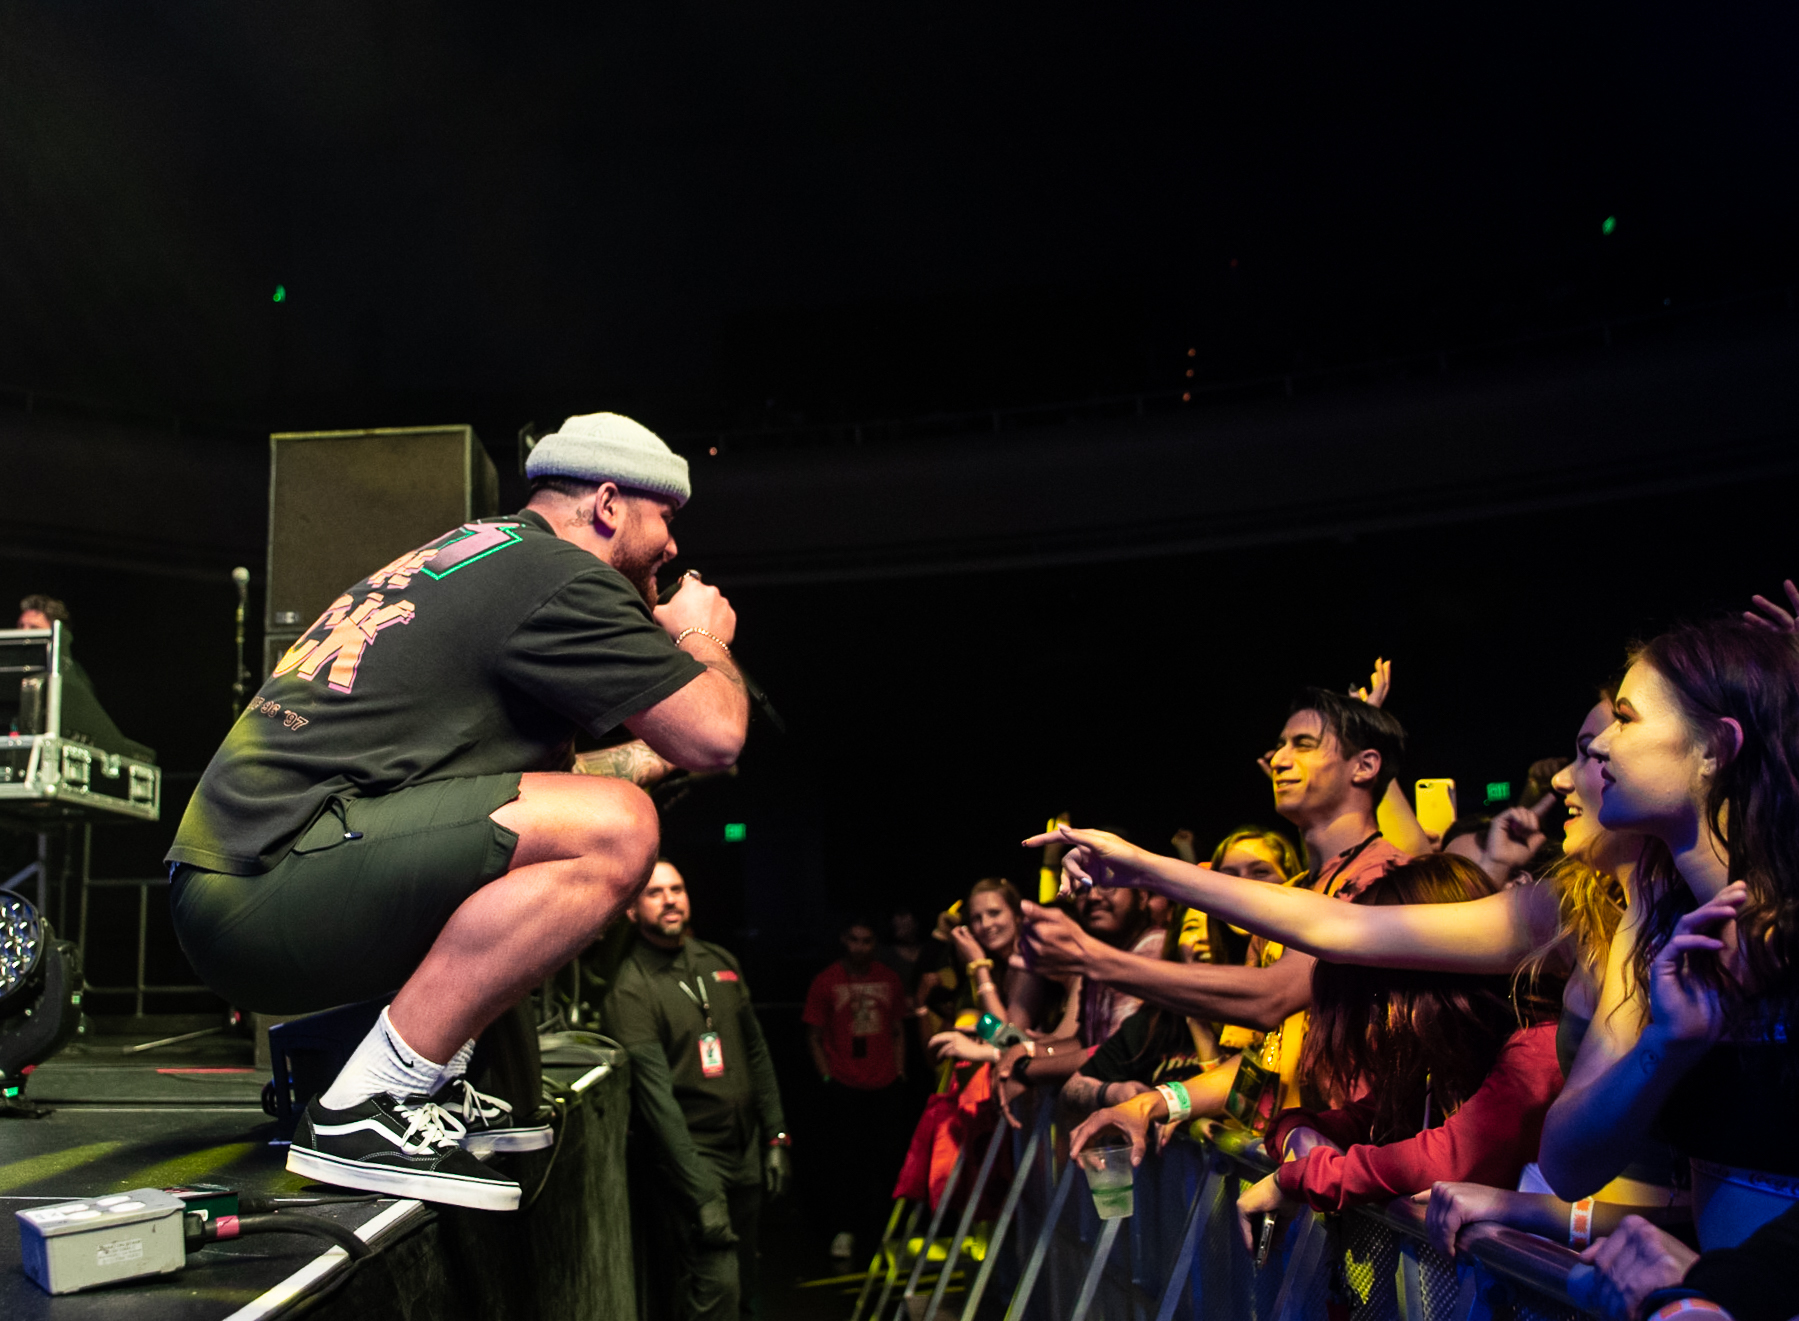 Gashi @ The Masonic: 5.19.19